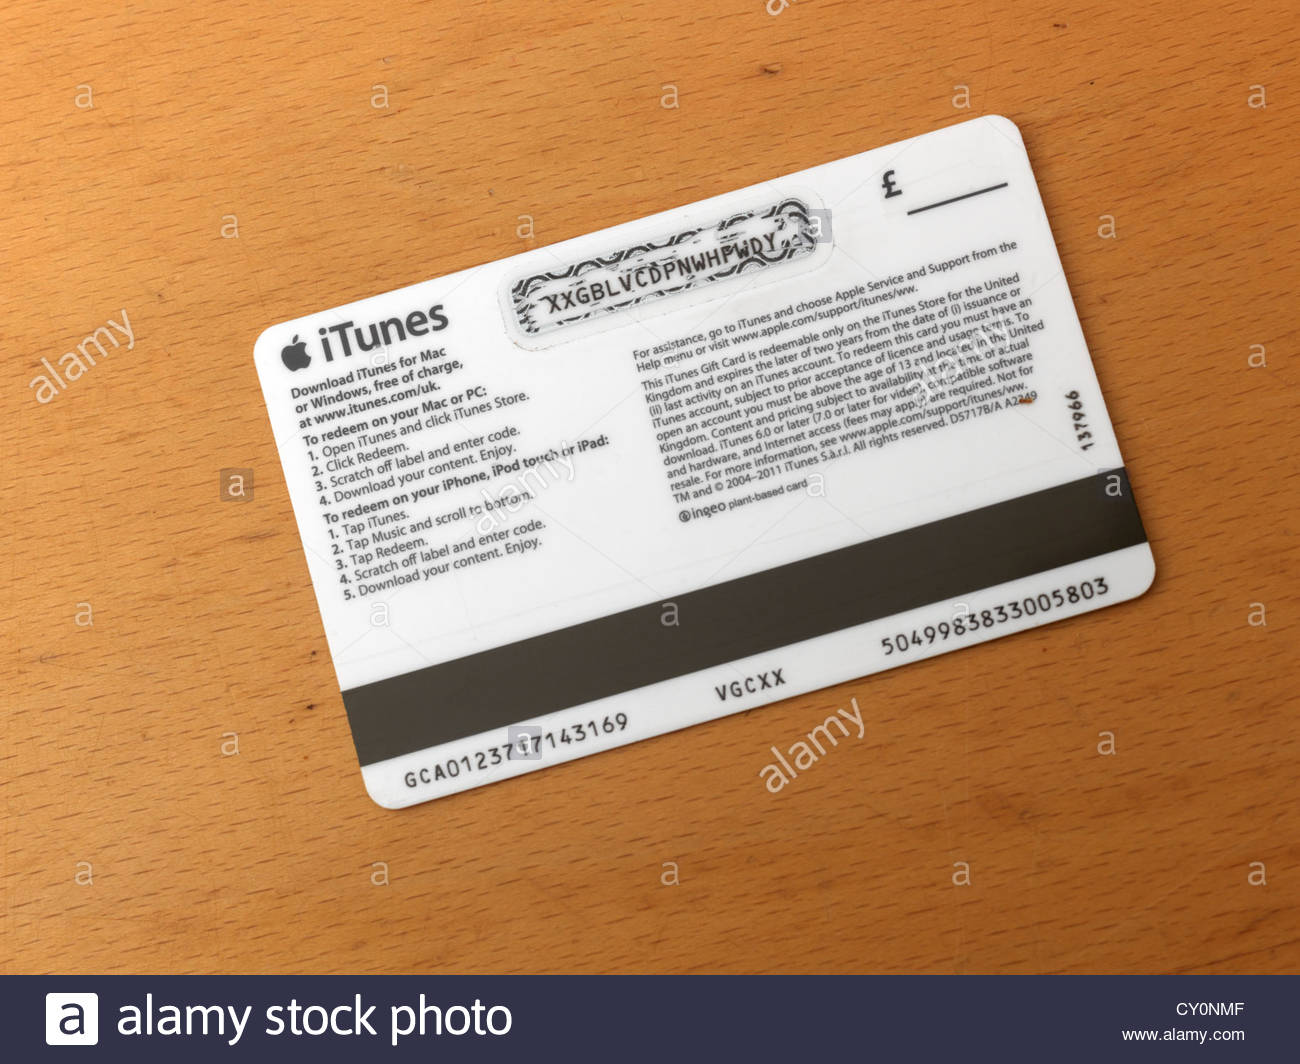 apple itunes gift card balance photo - 1